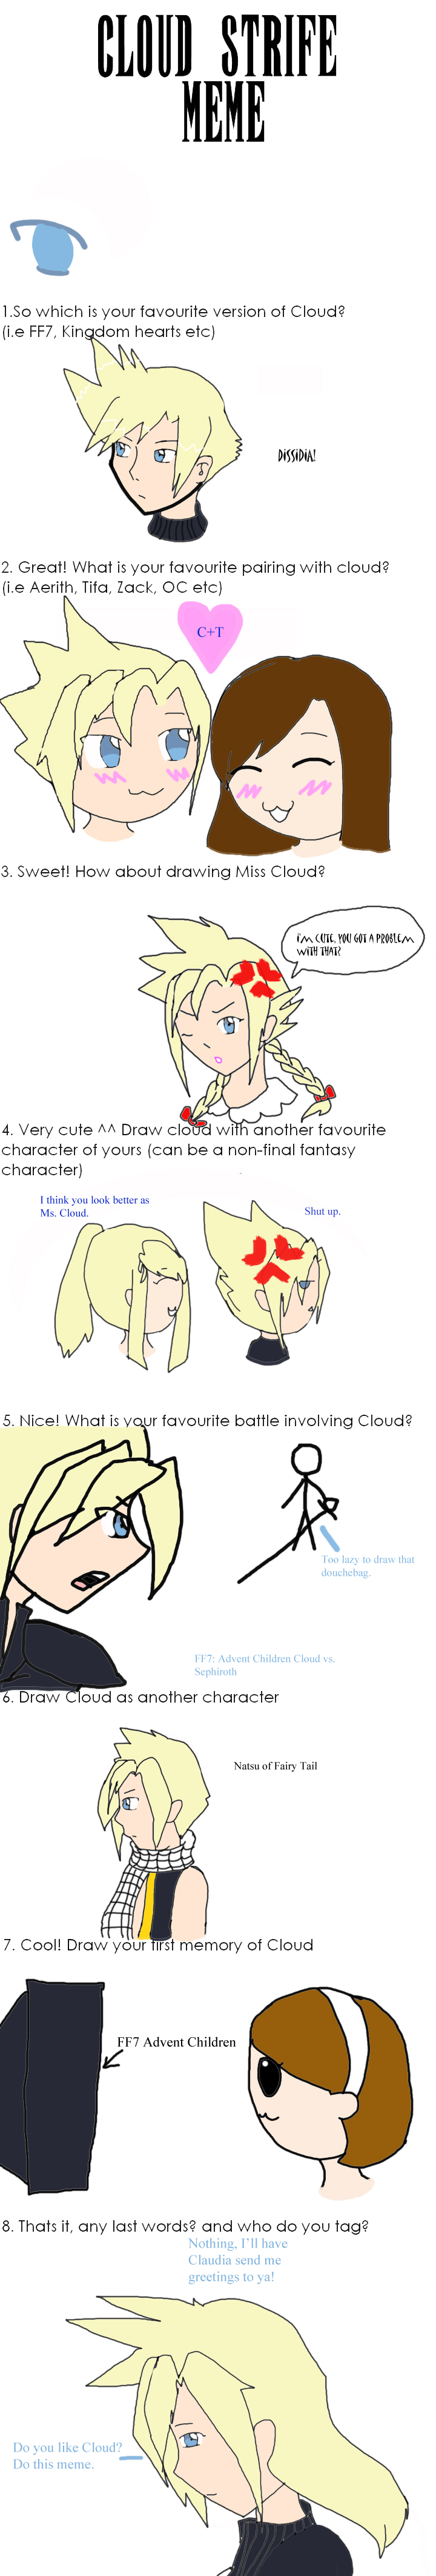 Cloud Strife Meme by NewLeaderMarie